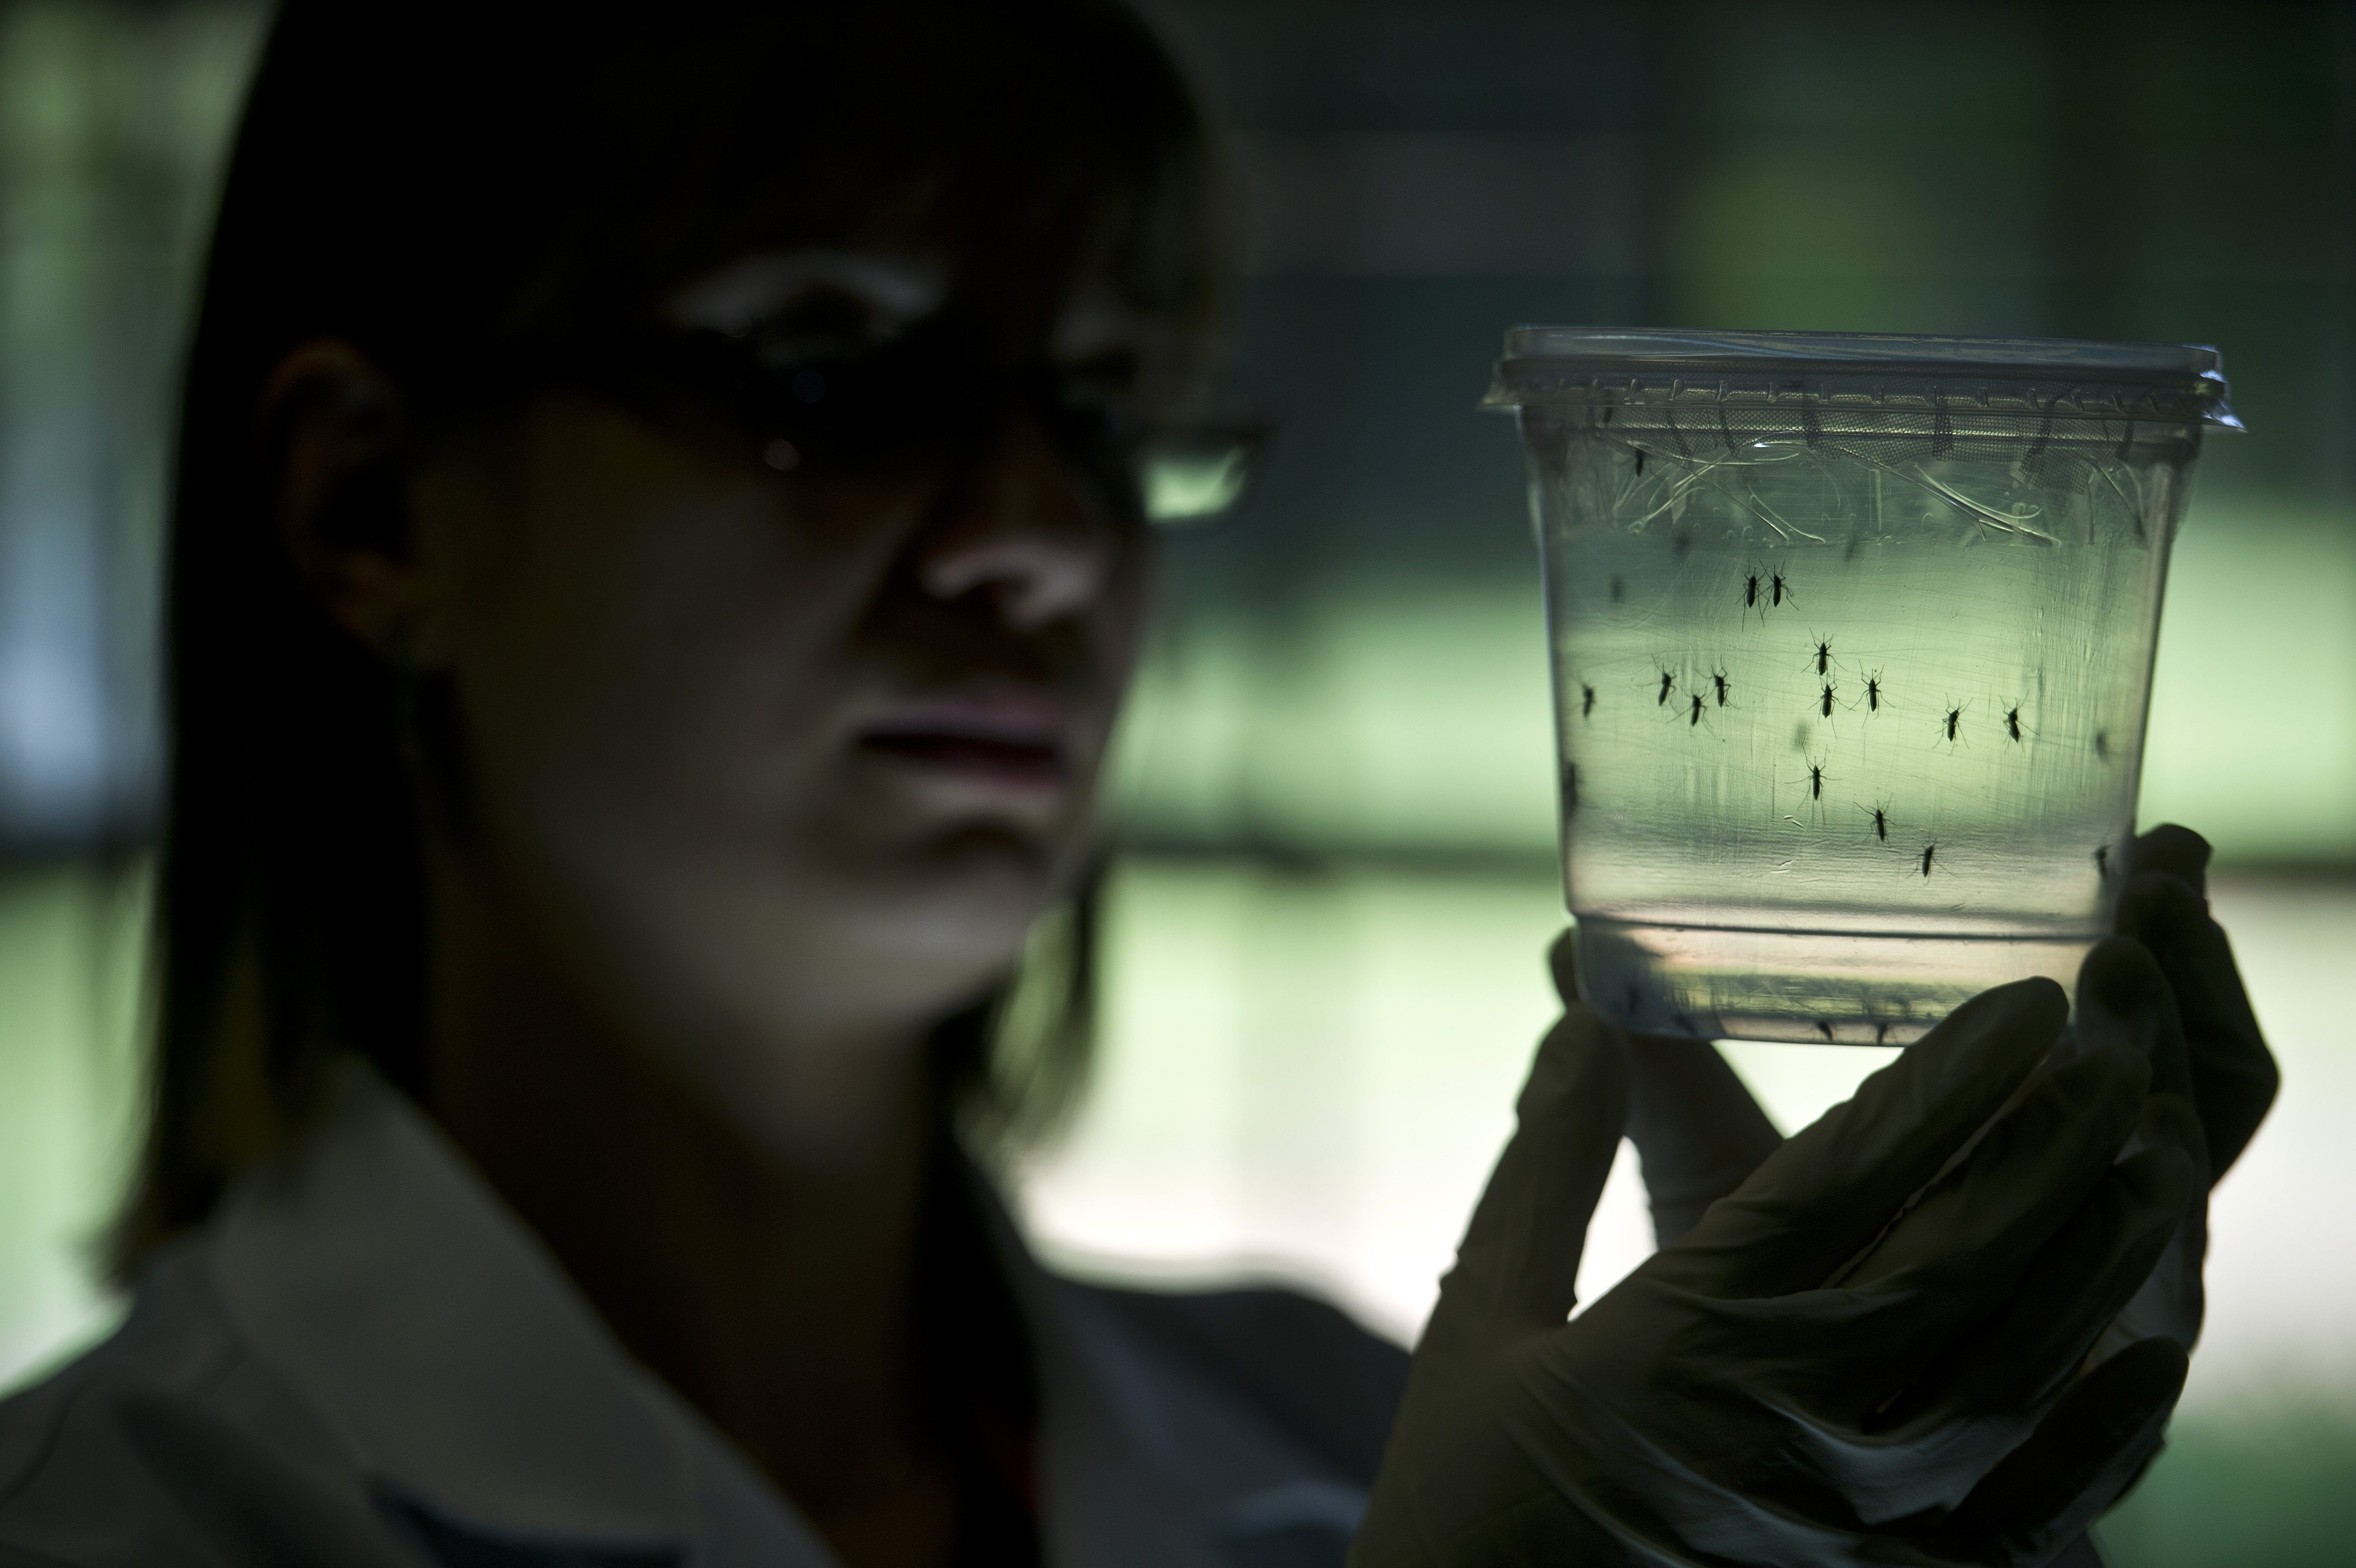 Aedes aegypti mosquitos are seen in containers at a lab of the Institute of Biomedical Sciences of the Sao Paulo University, on January 8, 2016 in Sao Paulo, Brazil. (Getty)